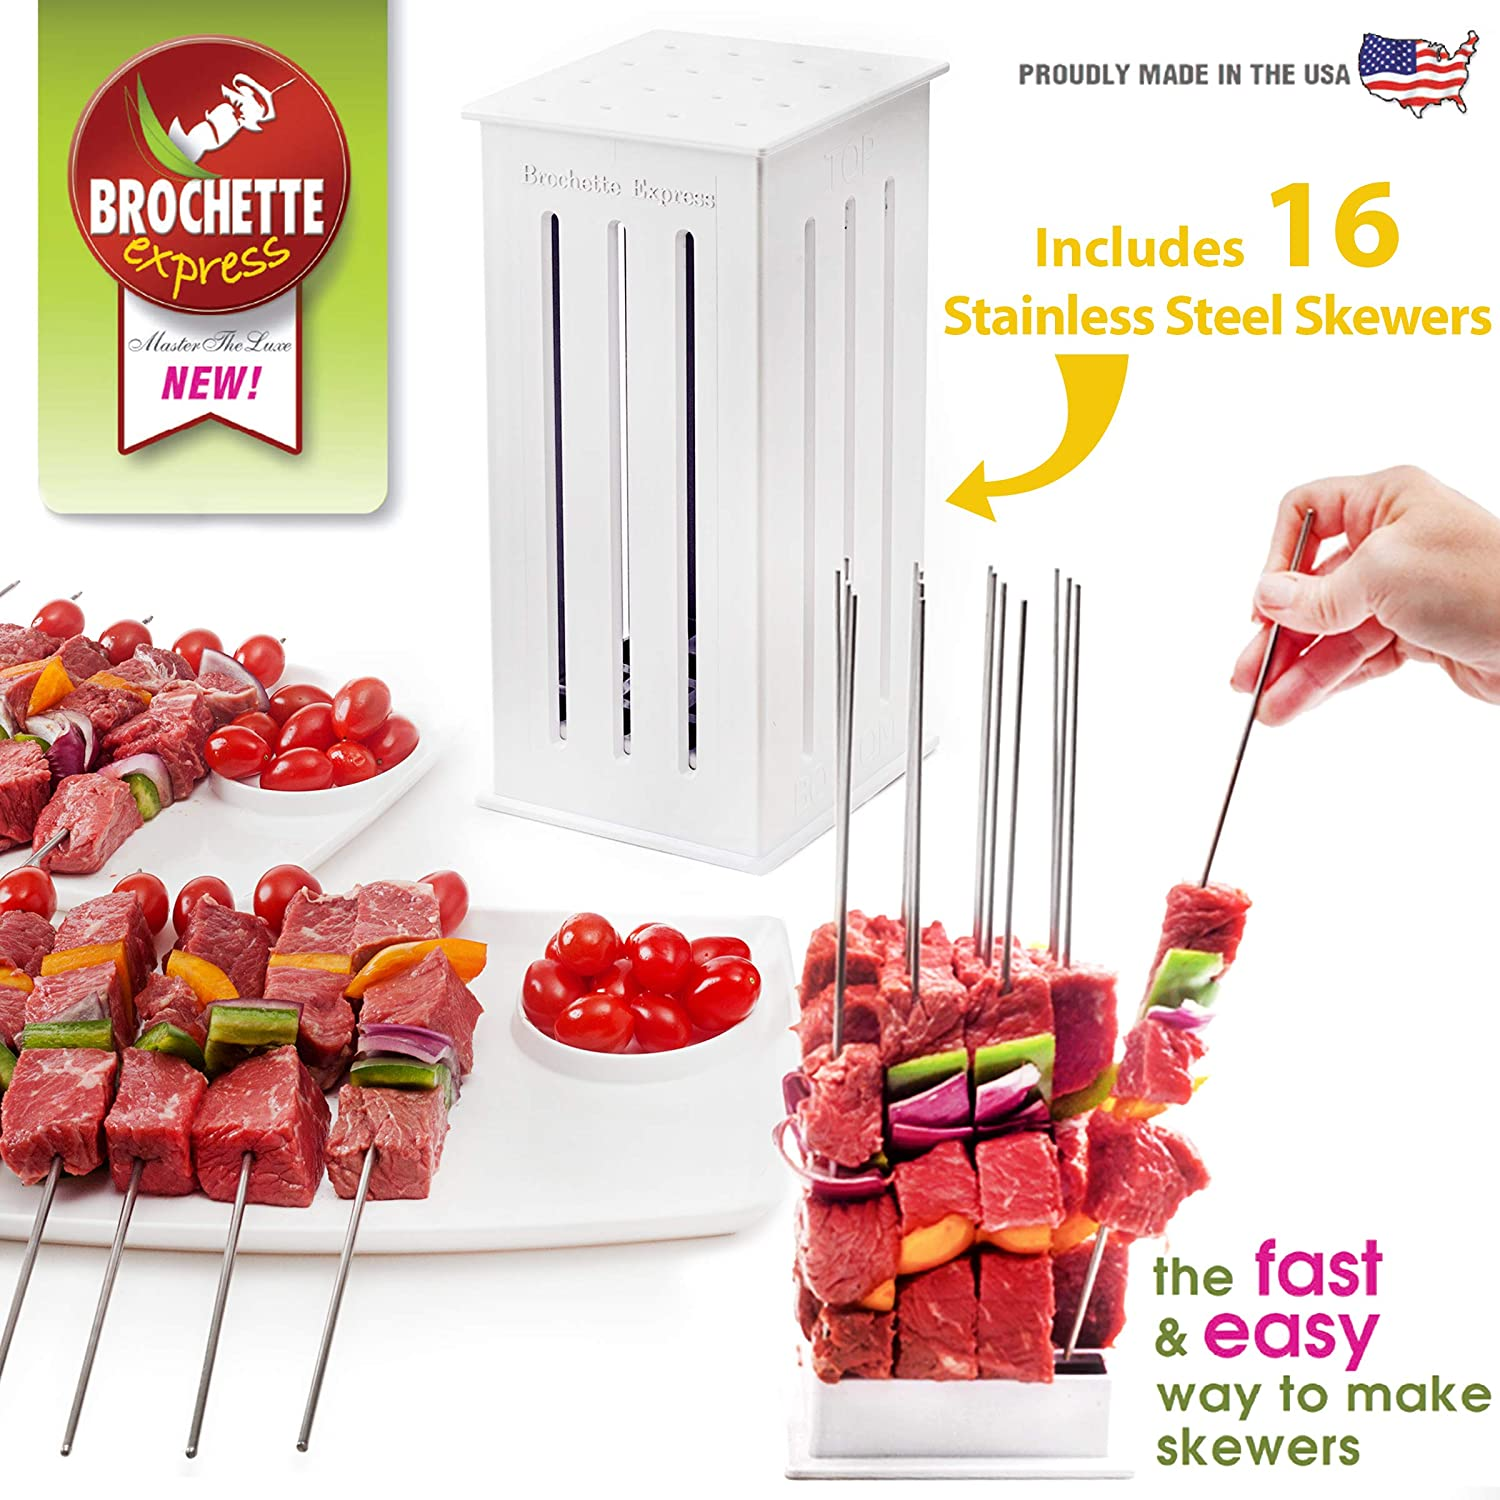 Brochette Express Kebab Kitchen Tool | 16 Stainless Steel Barbecue Skewers for Making Kabobs | Made in the USA